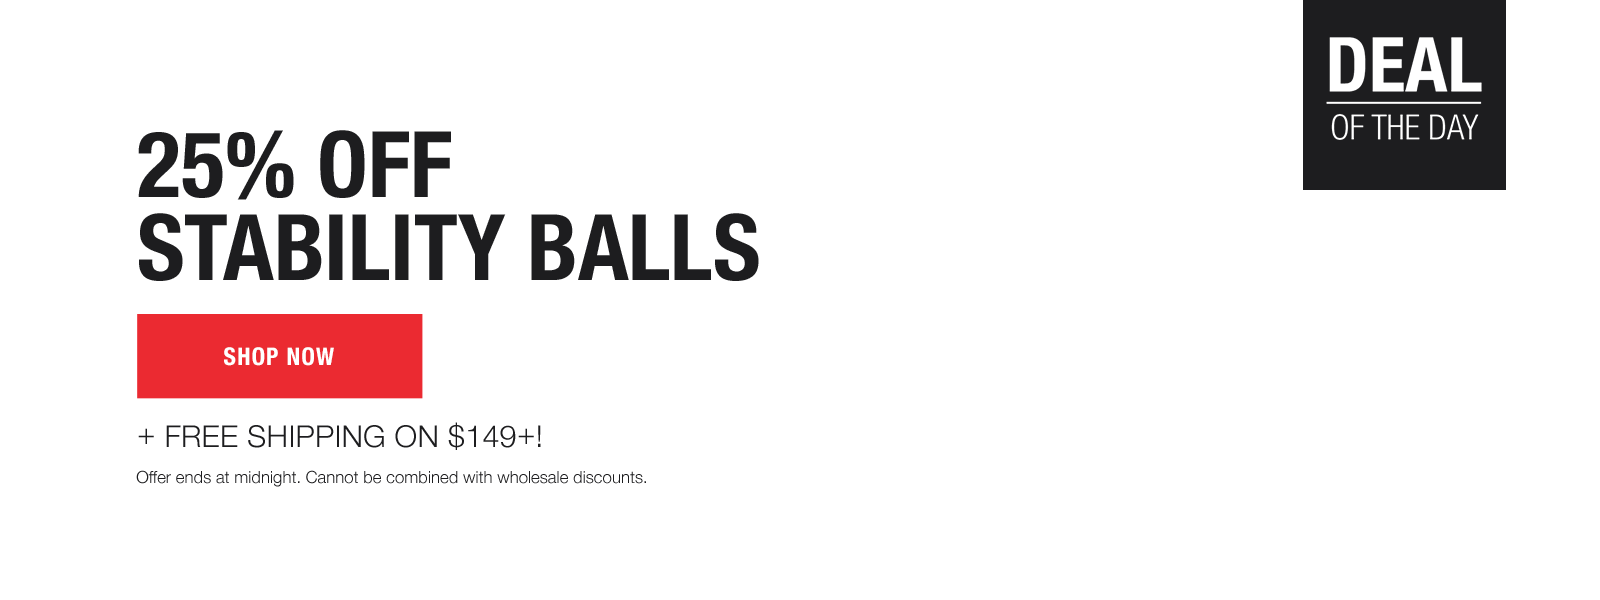 25% off stability balls, today only